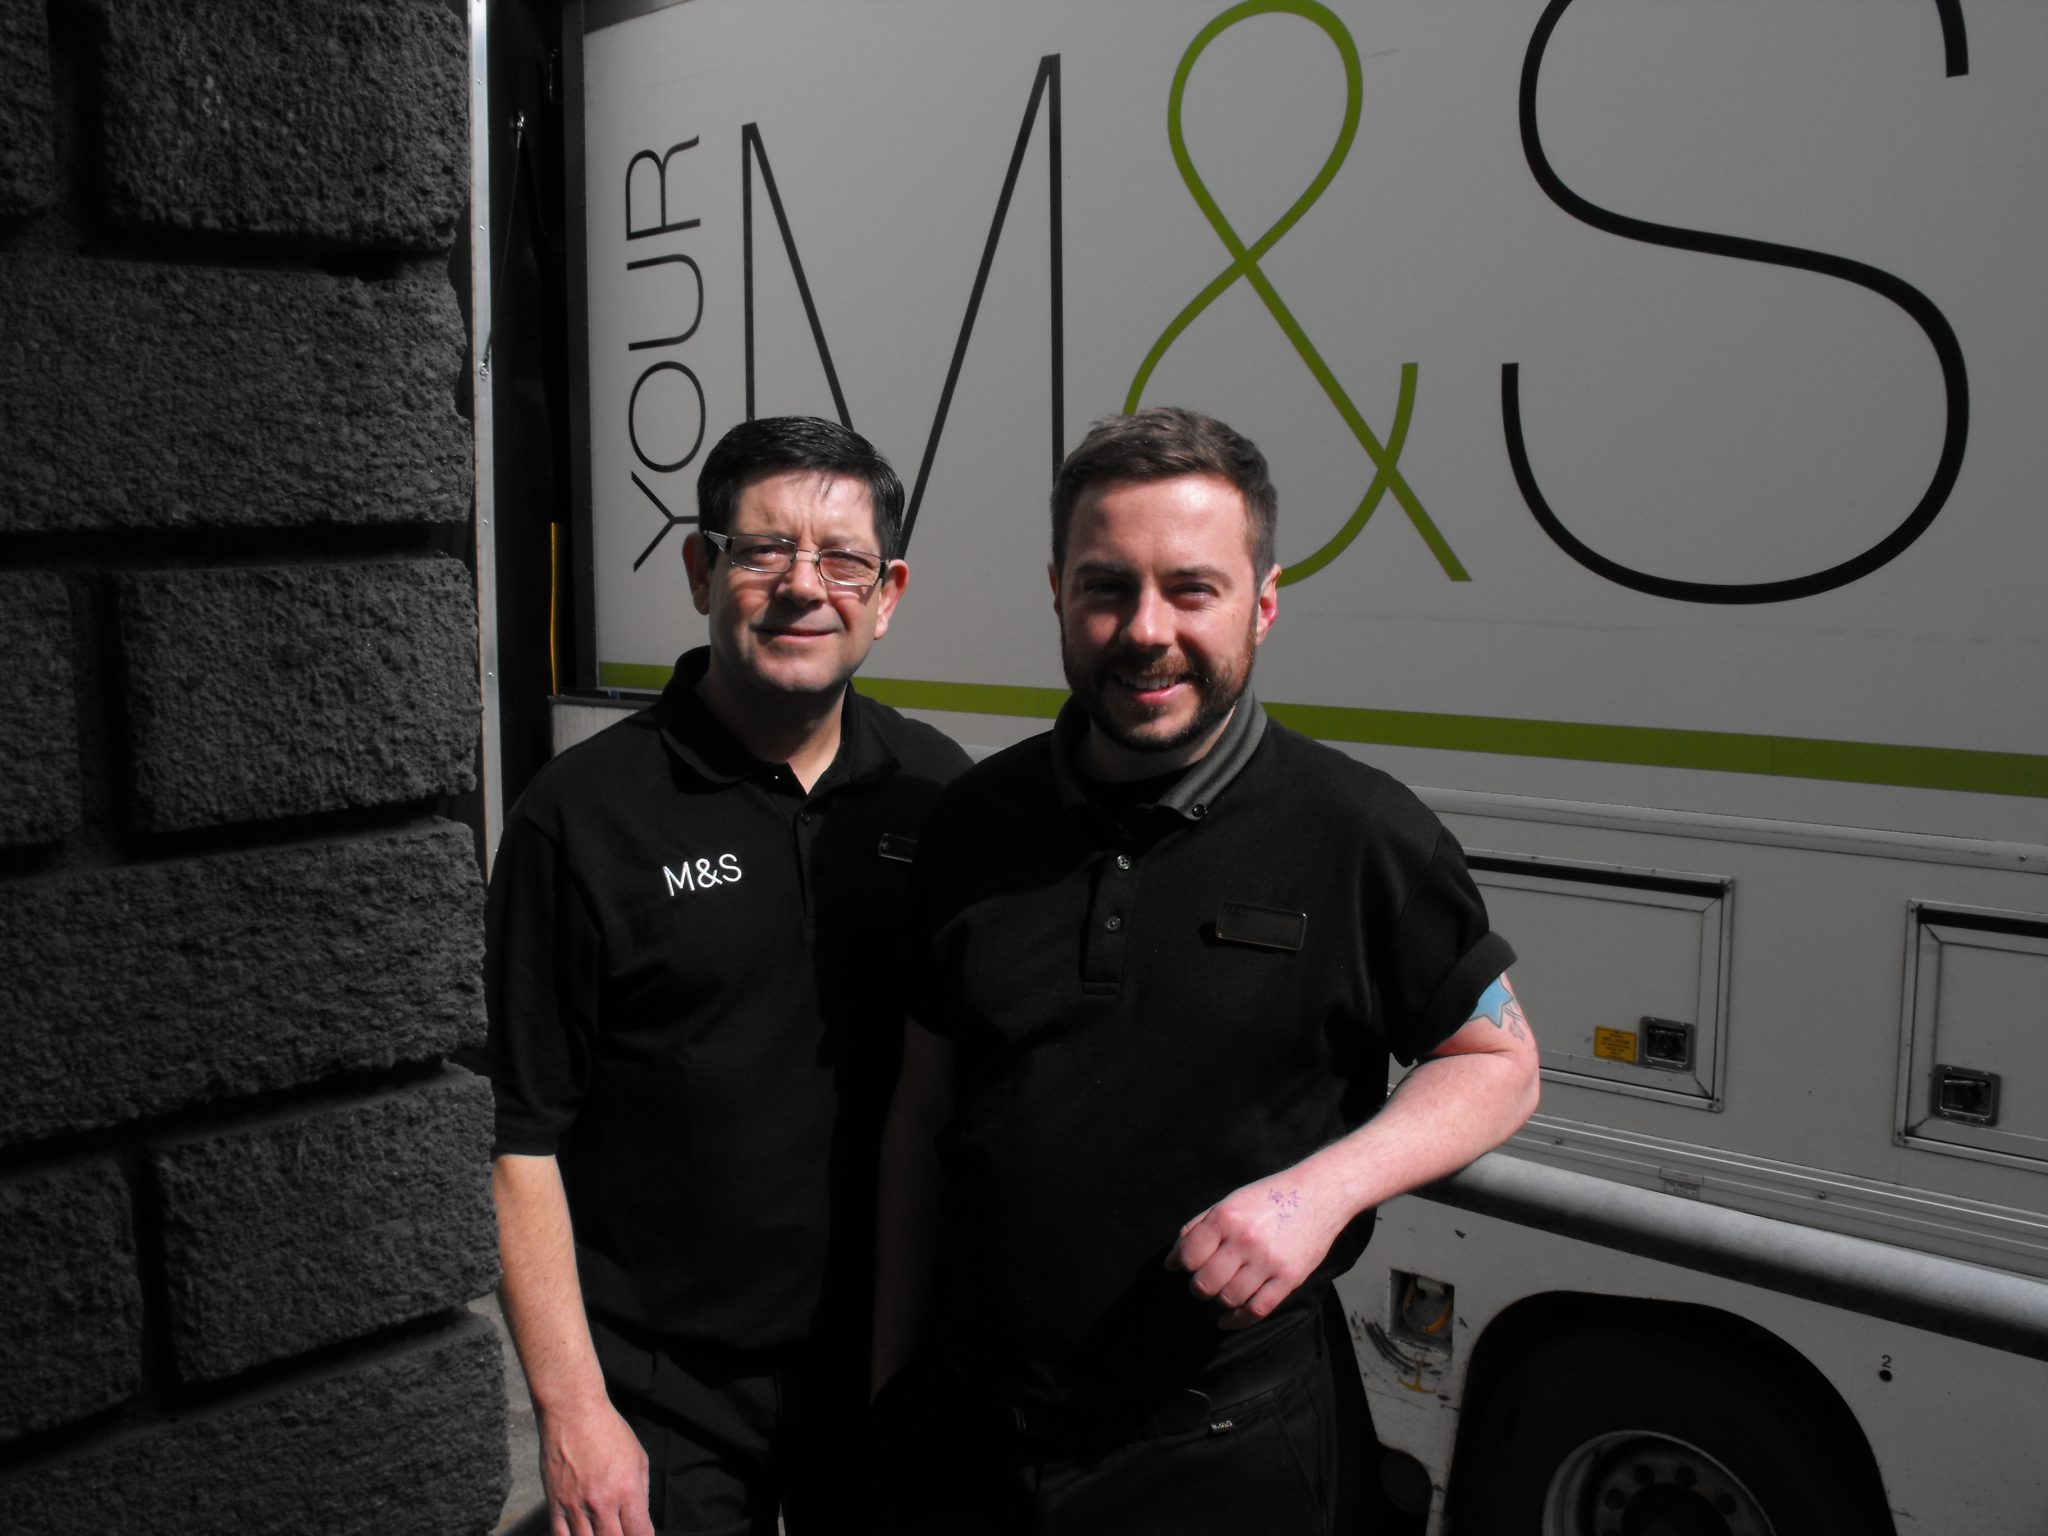 Ready-for-Work-Participant-Martin-with-Buddy-Paul-Dublin-Mary-Street-Loading-Bay-April-2016